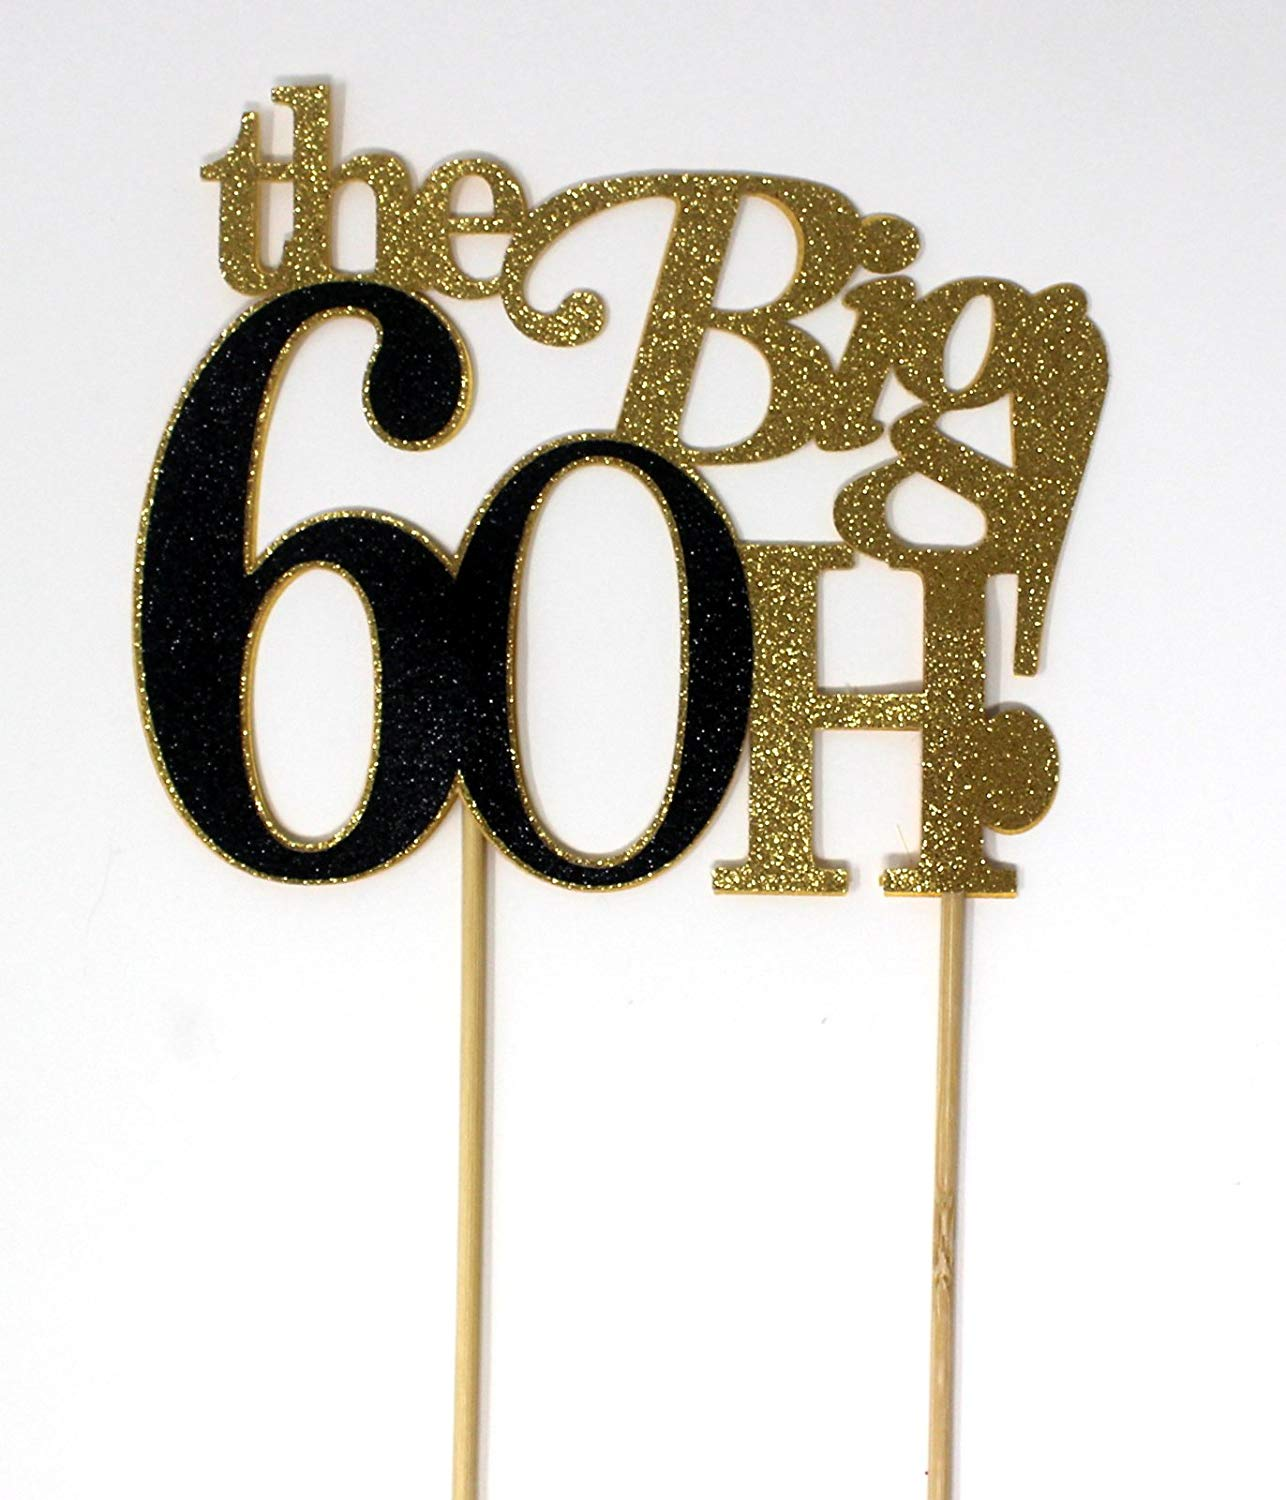 All About Details The Big 6OH! Cake Topper (Gold & Black) 1pc, 60th birthday, 60th anniversary, glitter topper